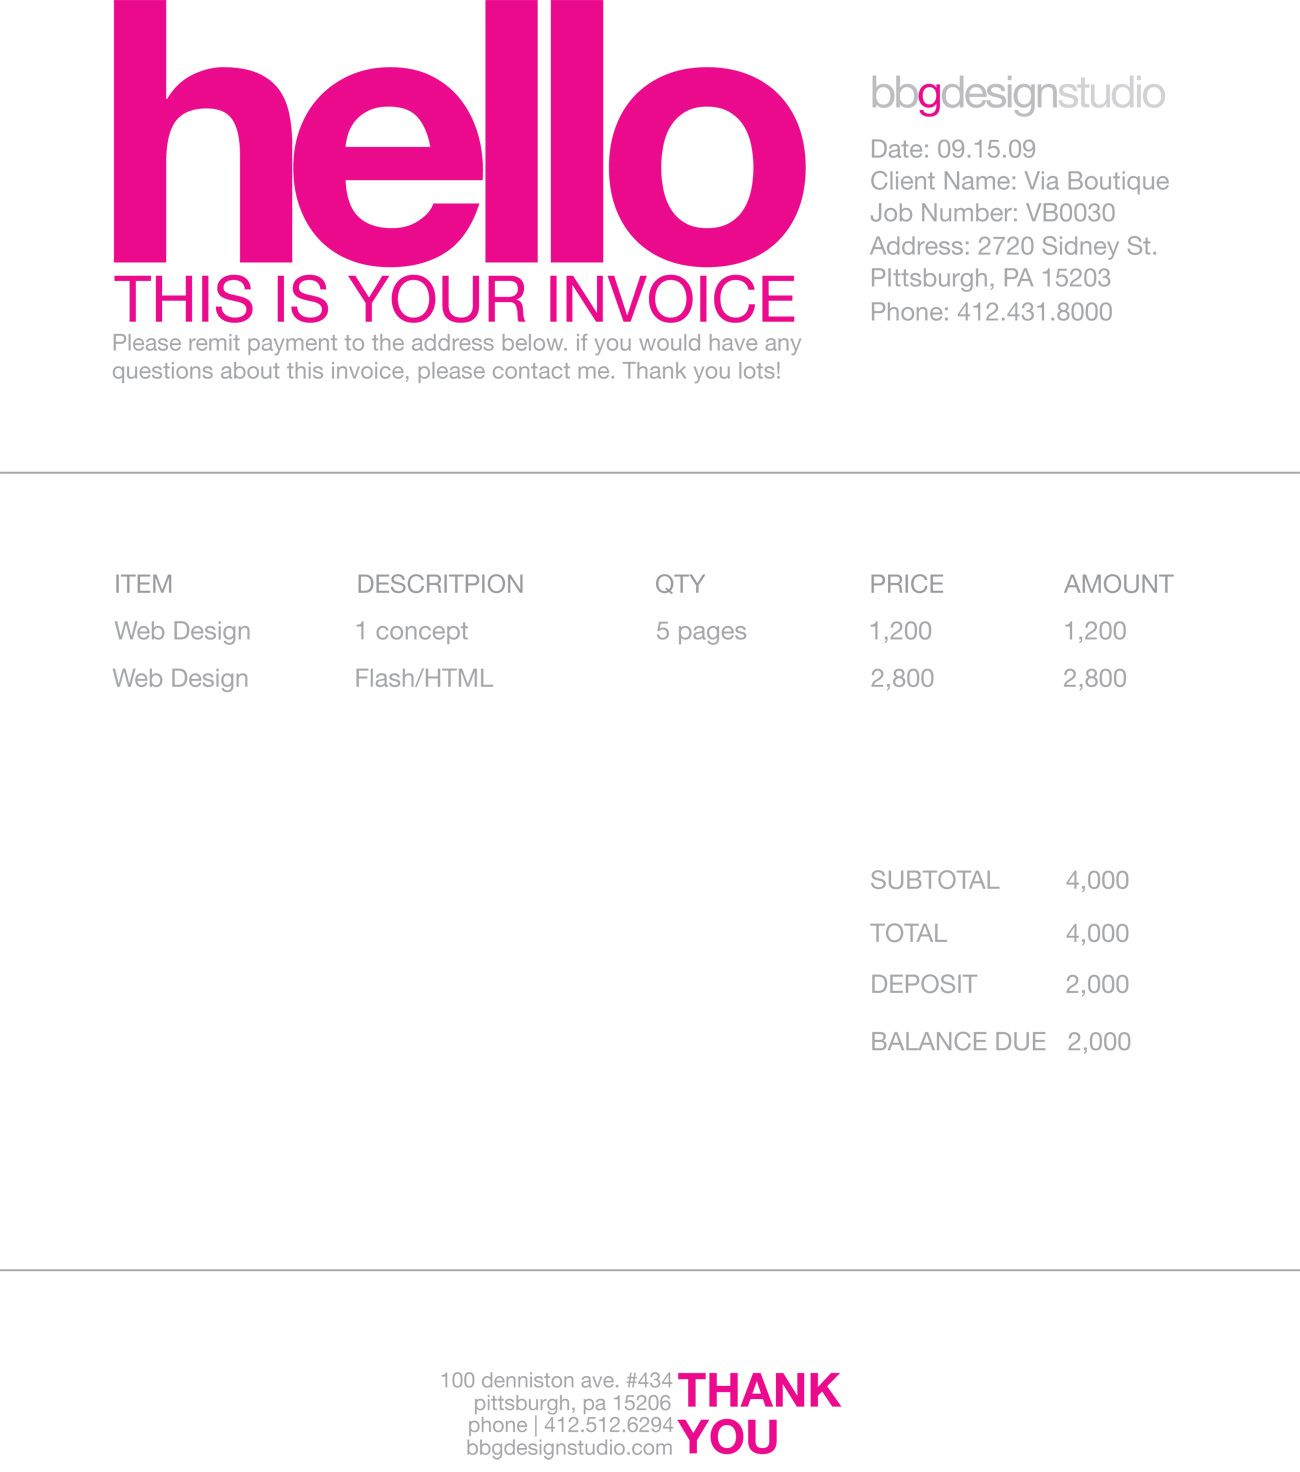 Shopdesignsus  Marvelous  Images About Invoice Design On Pinterest With Glamorous What Is Customer Invoice Besides Specimen Of Invoice Furthermore Sole Trader Invoice Example With Delectable Single Invoice Factoring Also Invoice Blank Template In Addition Labour Invoice Template And Define An Invoice As Well As Invoice Template In Microsoft Word Additionally Invoice Finance Westpac From Pinterestcom With Shopdesignsus  Glamorous  Images About Invoice Design On Pinterest With Delectable What Is Customer Invoice Besides Specimen Of Invoice Furthermore Sole Trader Invoice Example And Marvelous Single Invoice Factoring Also Invoice Blank Template In Addition Labour Invoice Template From Pinterestcom